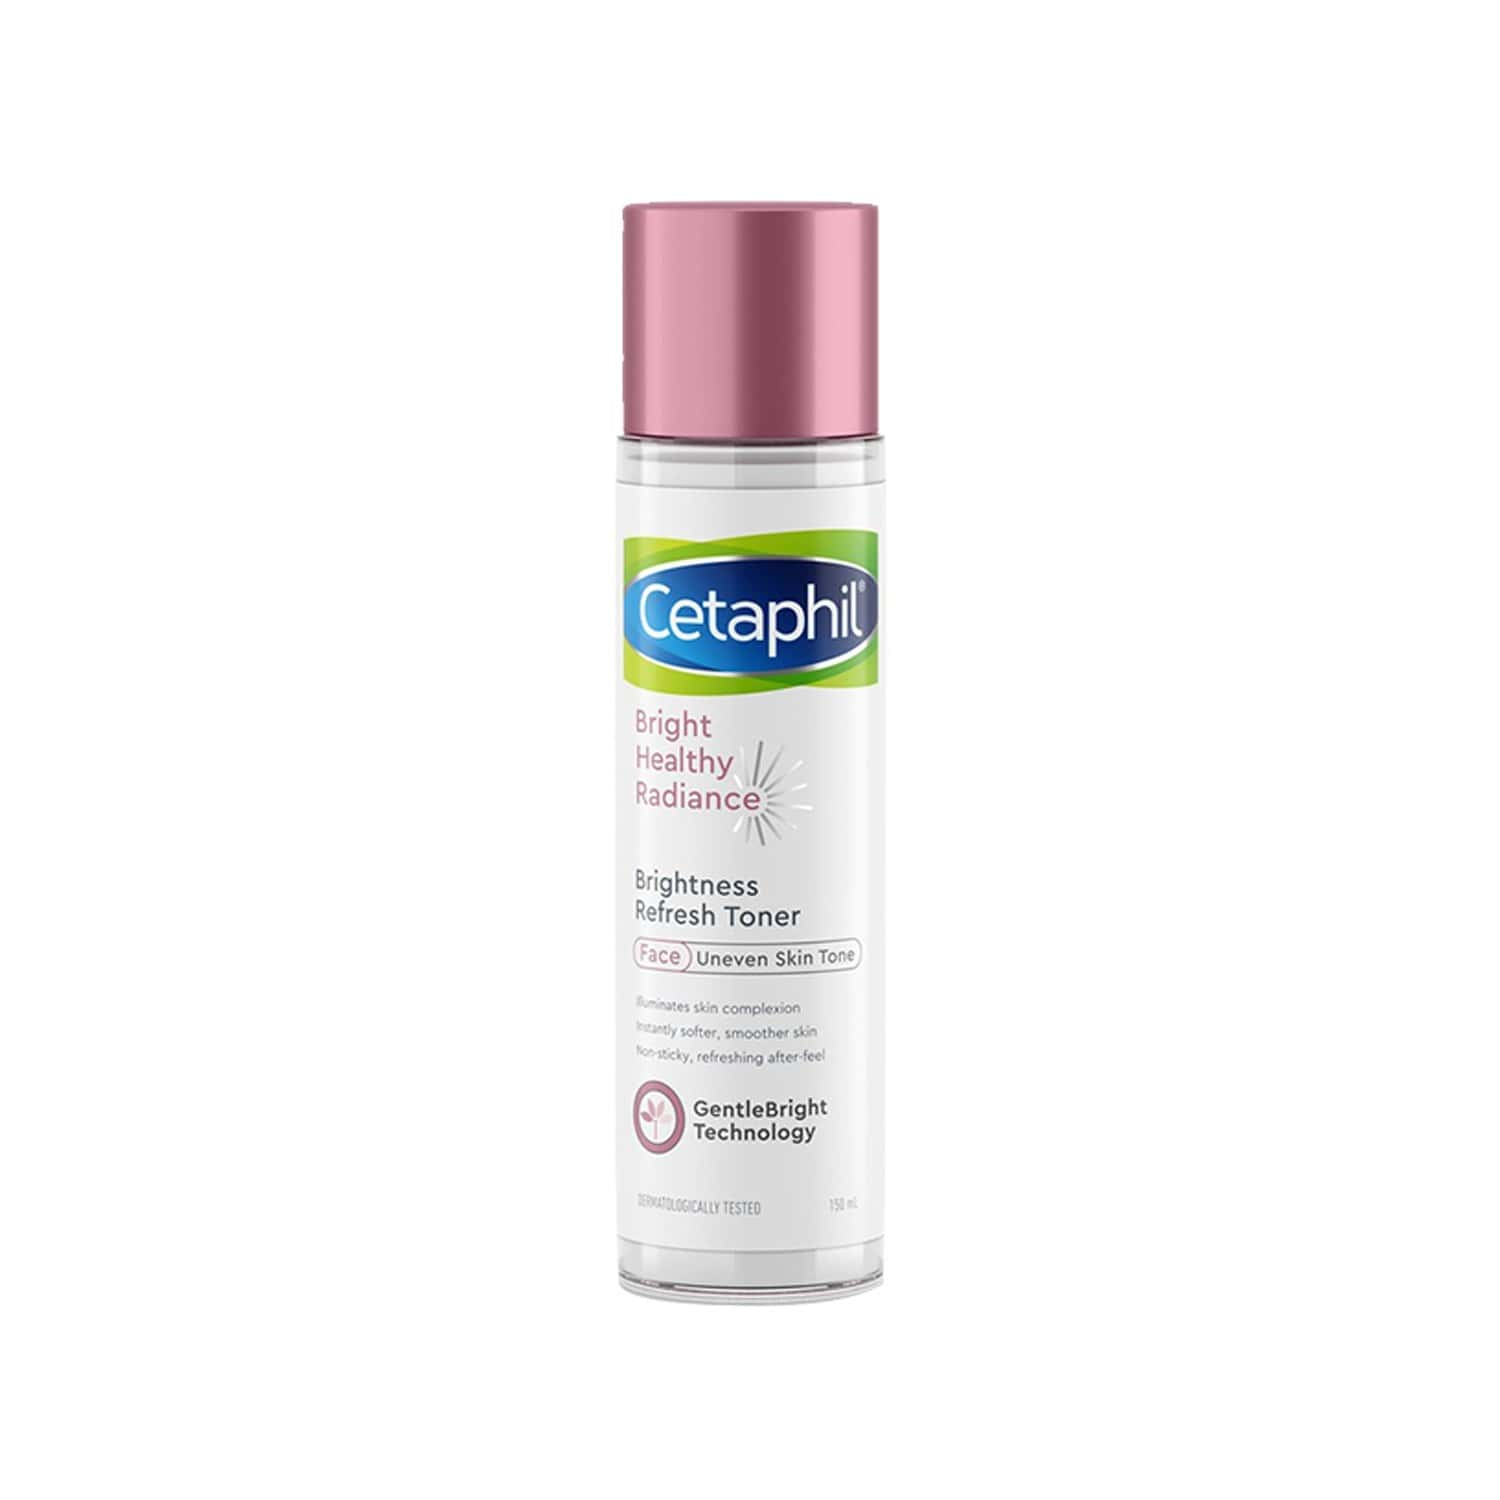 Cetaphil Bhr Brightness Refresh Toner - 150ml